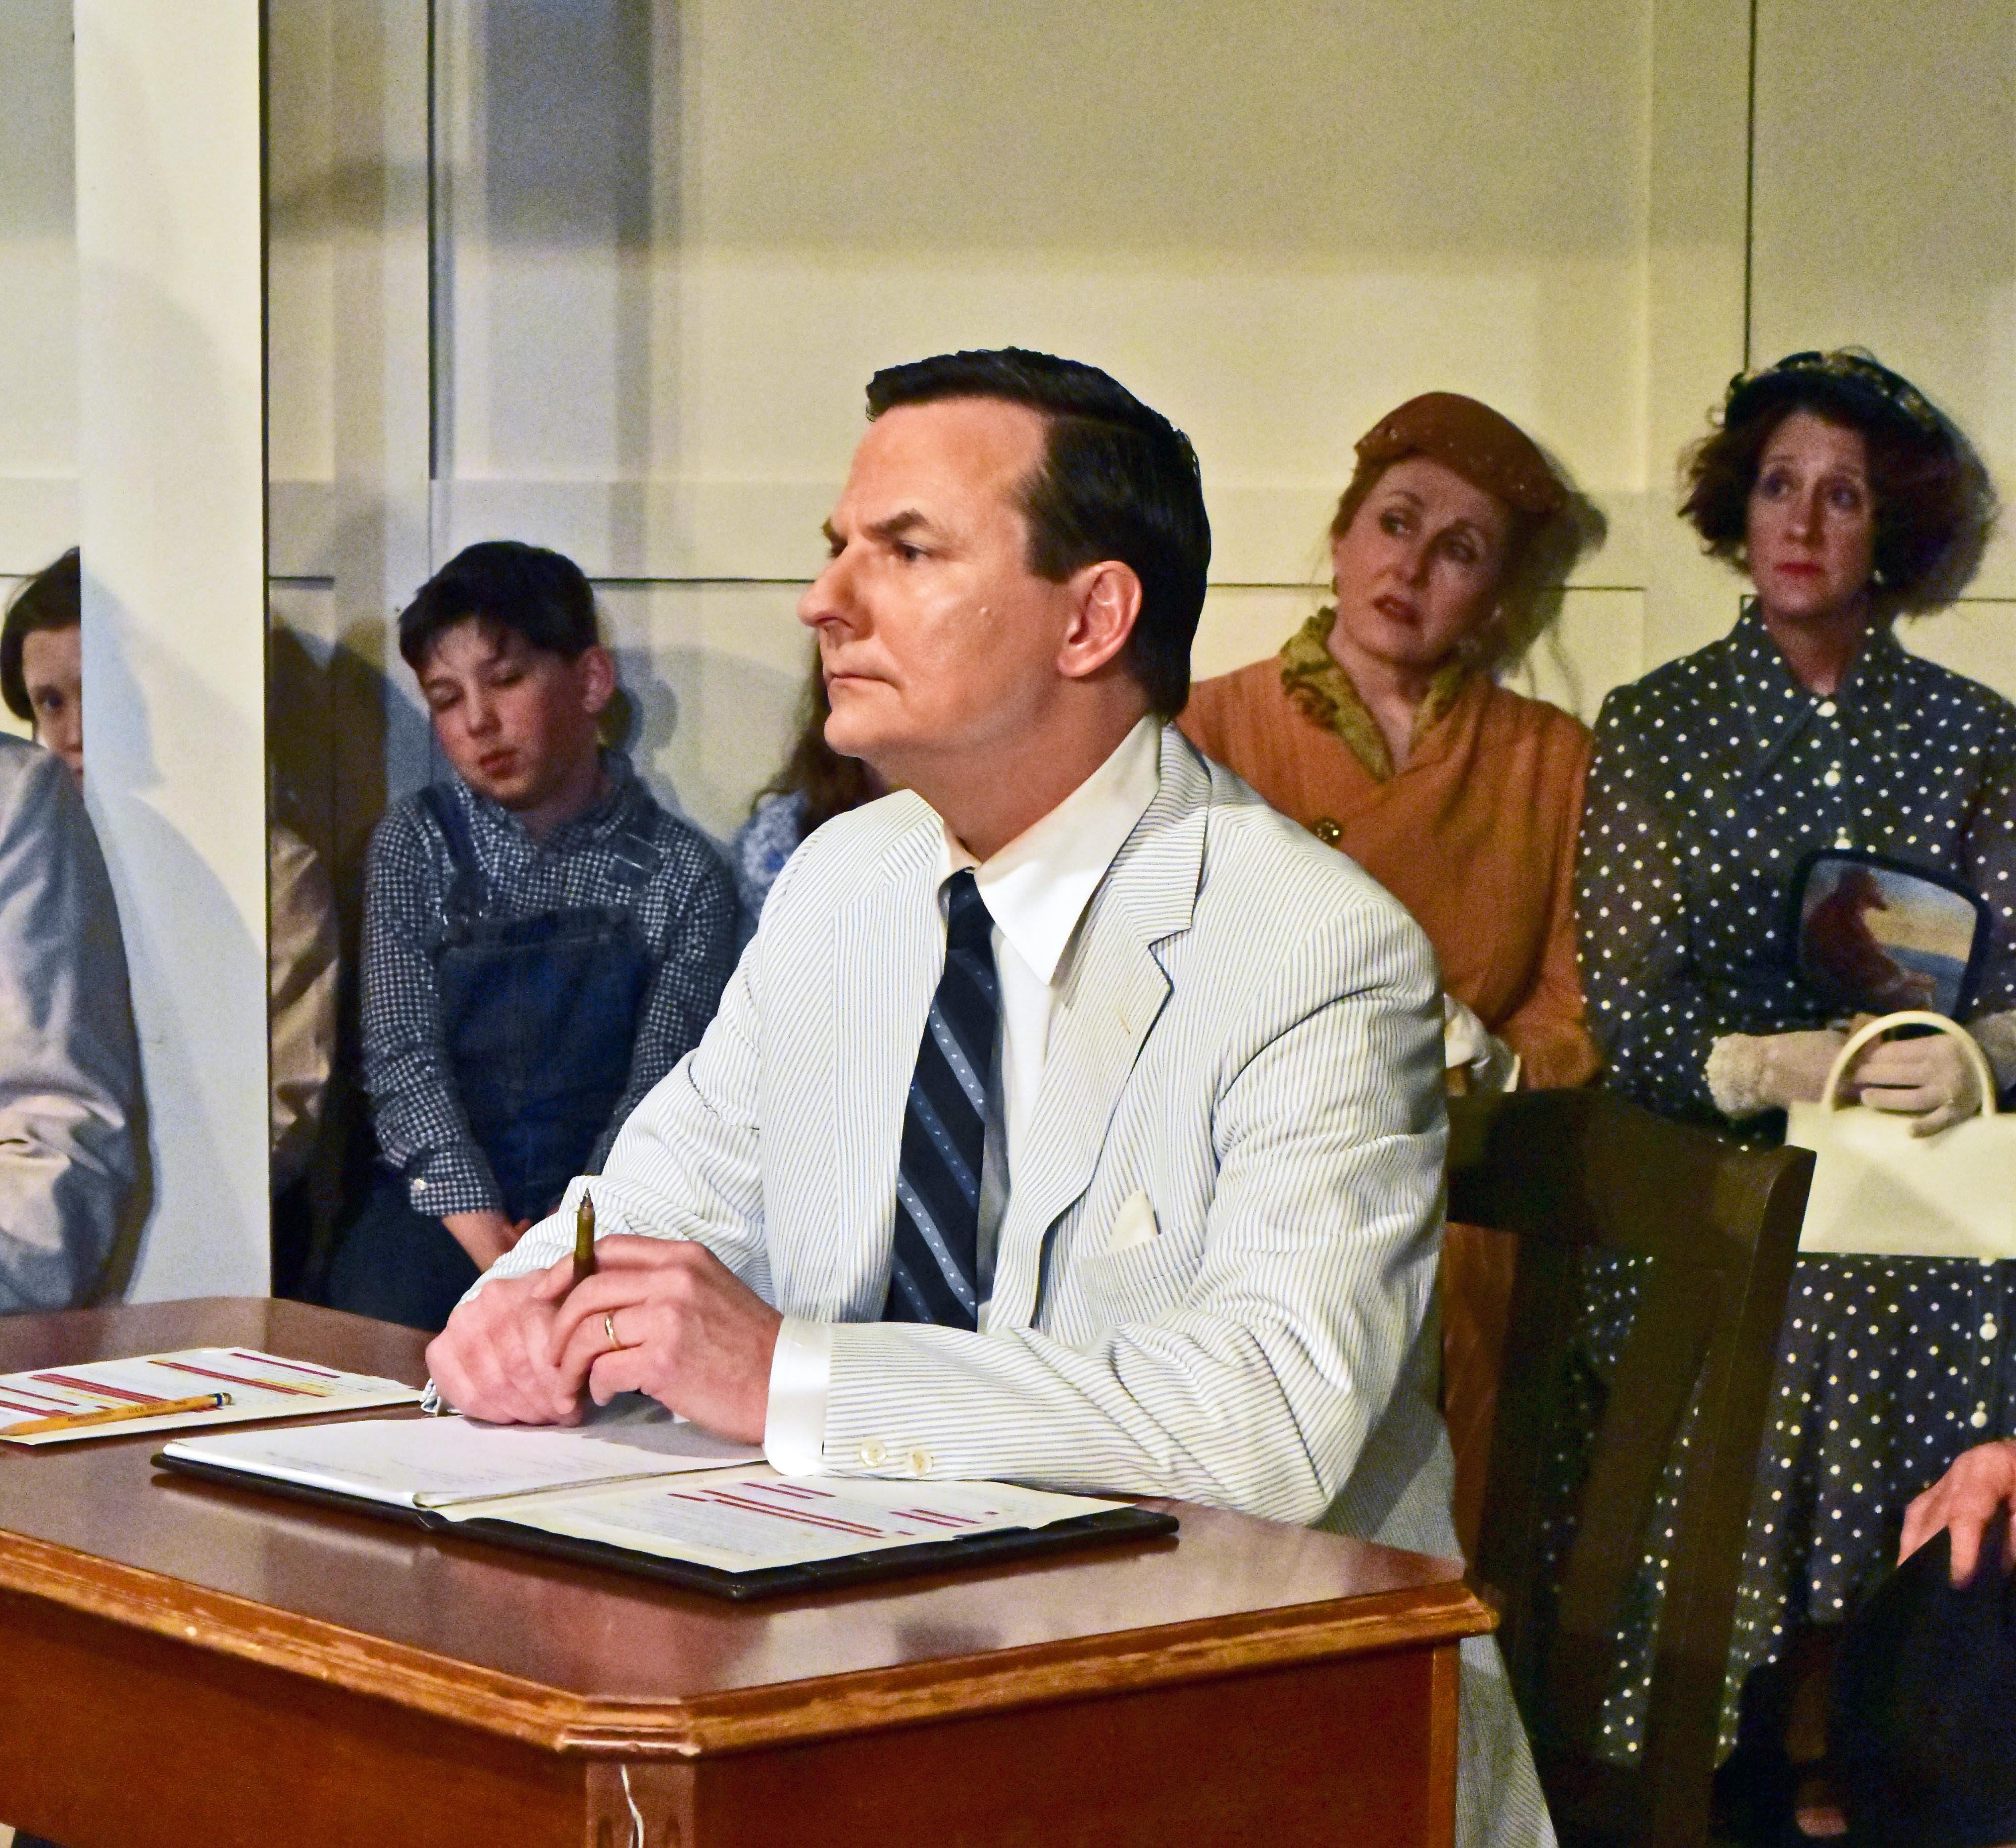 Chris Persil as Prosecutor Gilmer in To Kill a Mockingbird-Photo by Chip Gertzog Providence Players